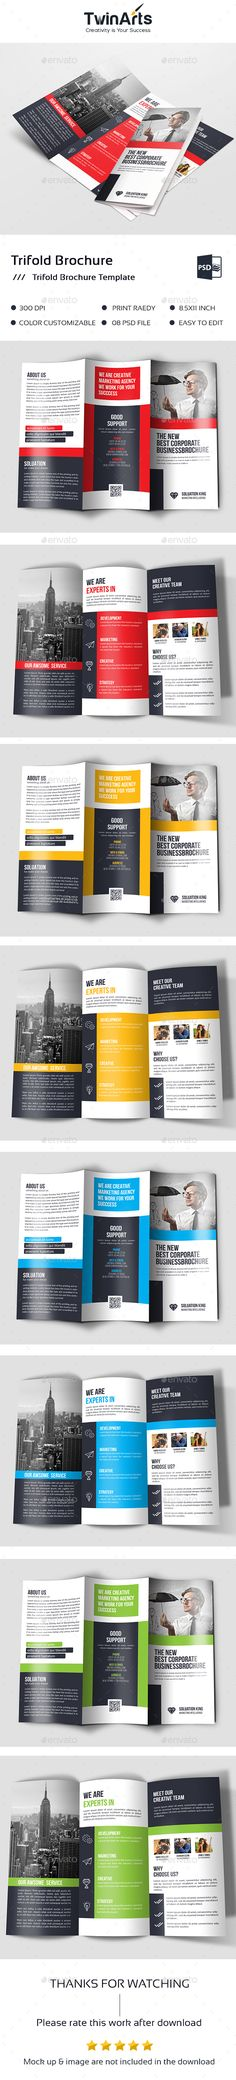 Corporate #Trifold Brochure - #Brochures Print Templates Download here: https://graphicriver.net/item/corporate-trifold-brochure/20291361?ref=alena994